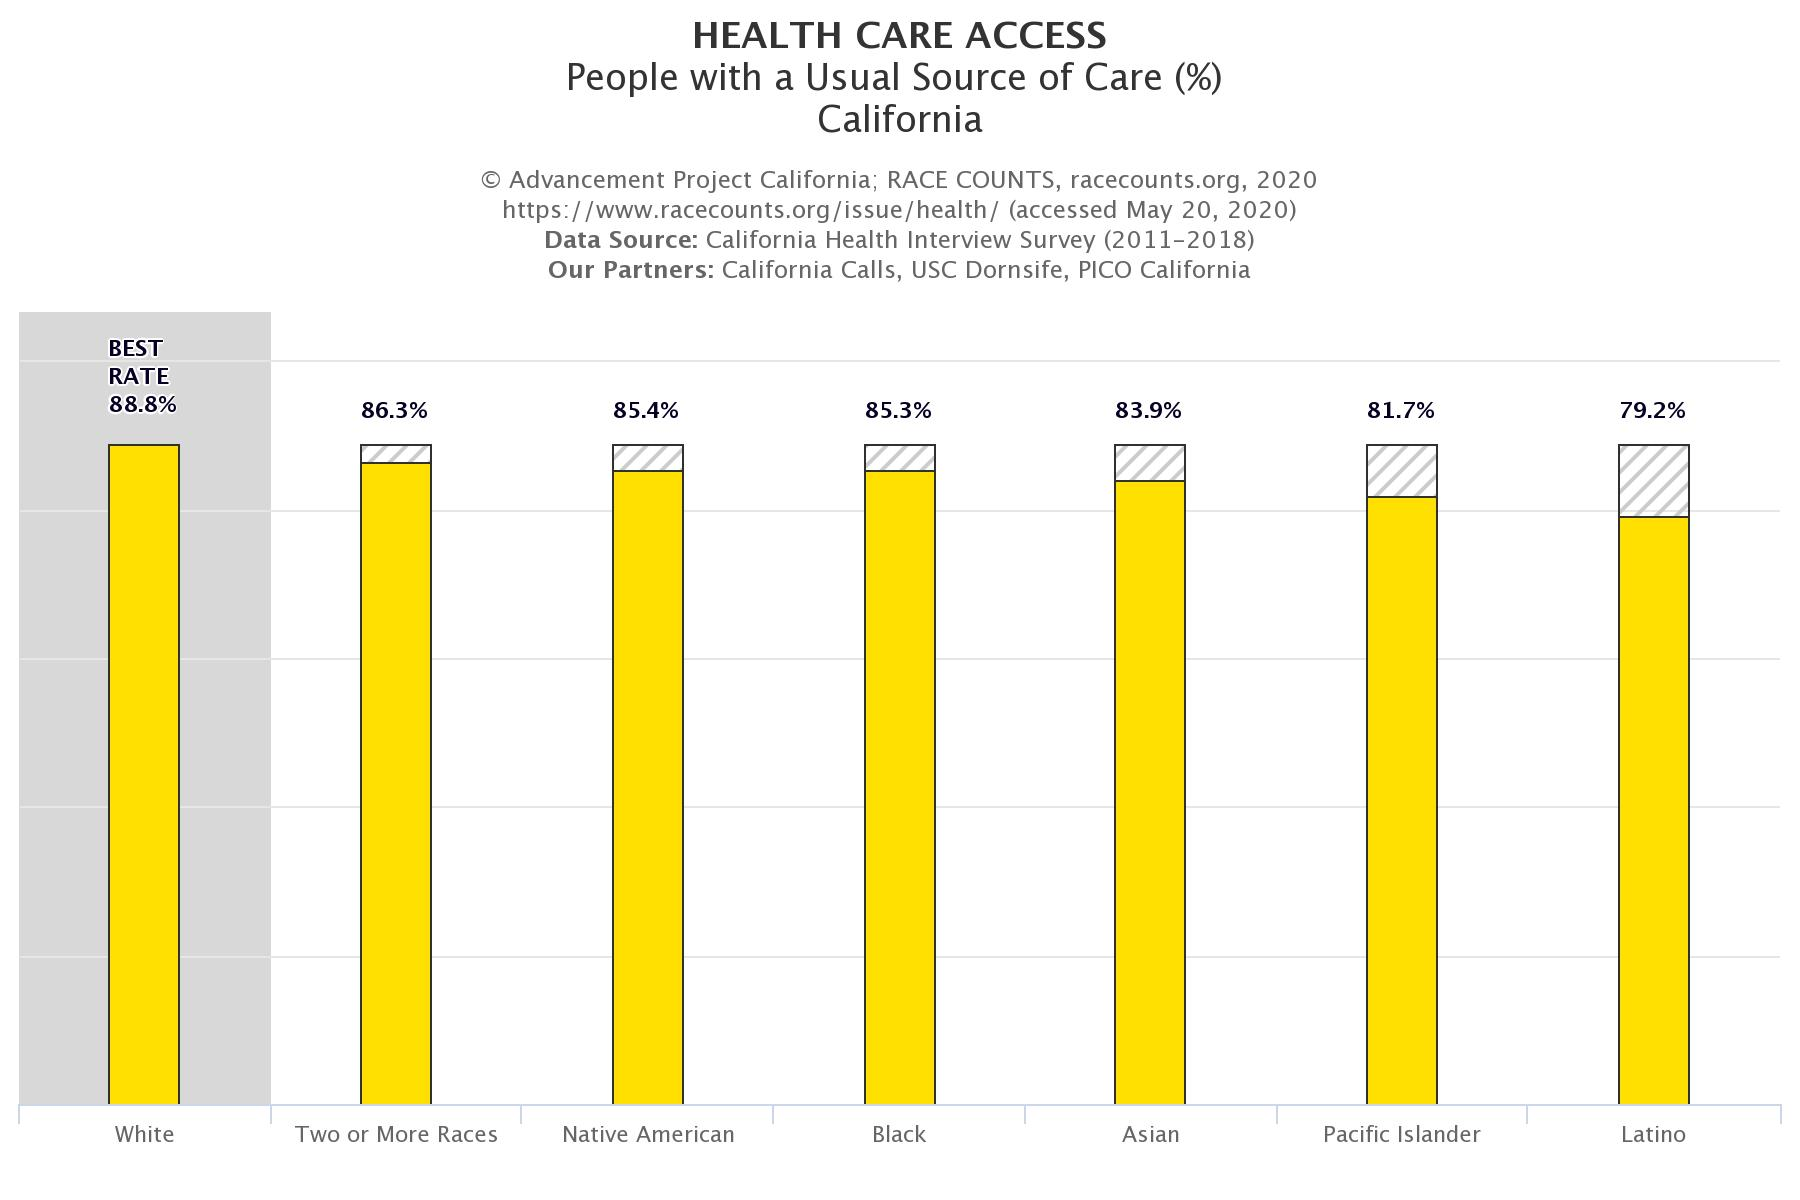 racecounts-health-care-access-usual-source-of-care-california